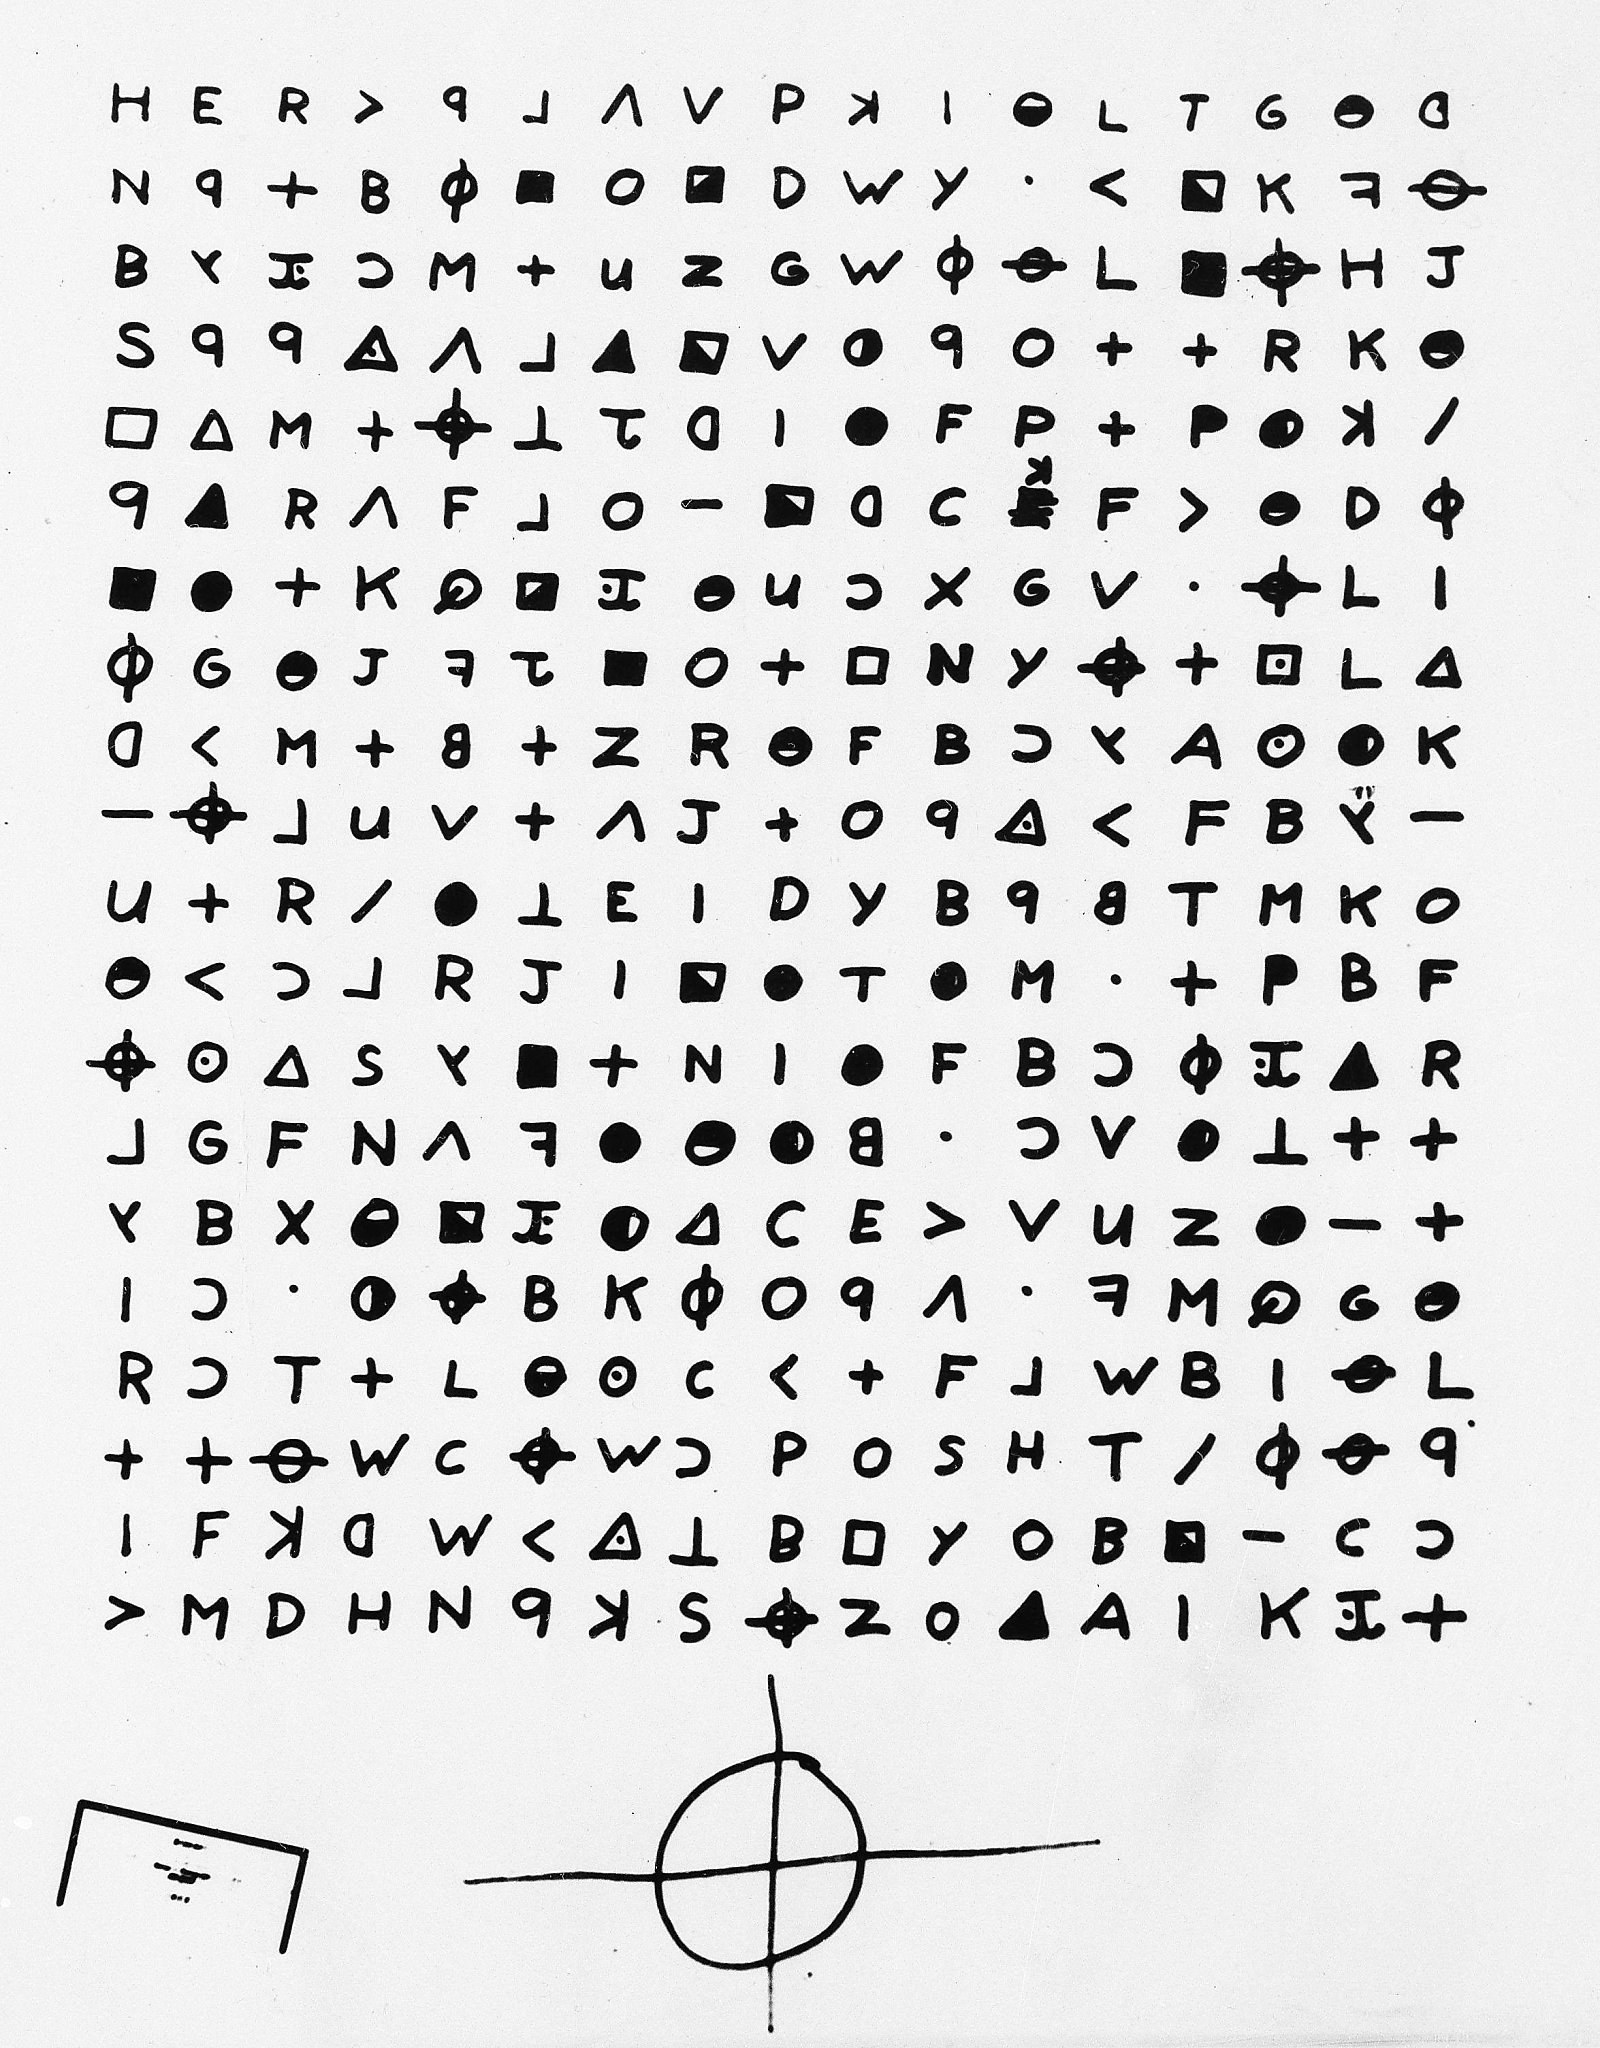 Zodiac killer theories still rolling in after 45 years